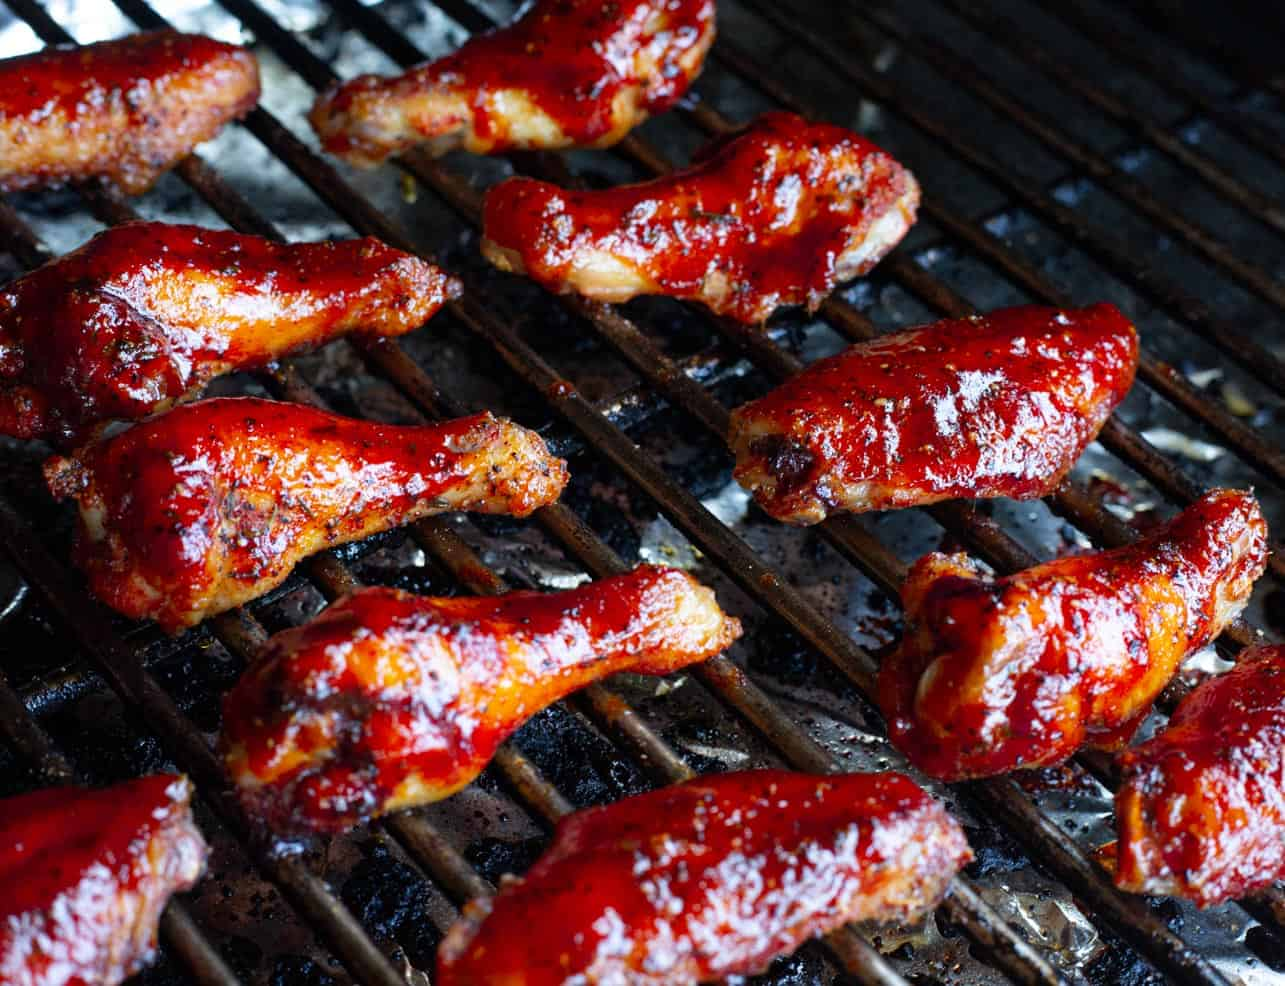 Wings on a barbecue smoker coated with strawberry barbecue sauce